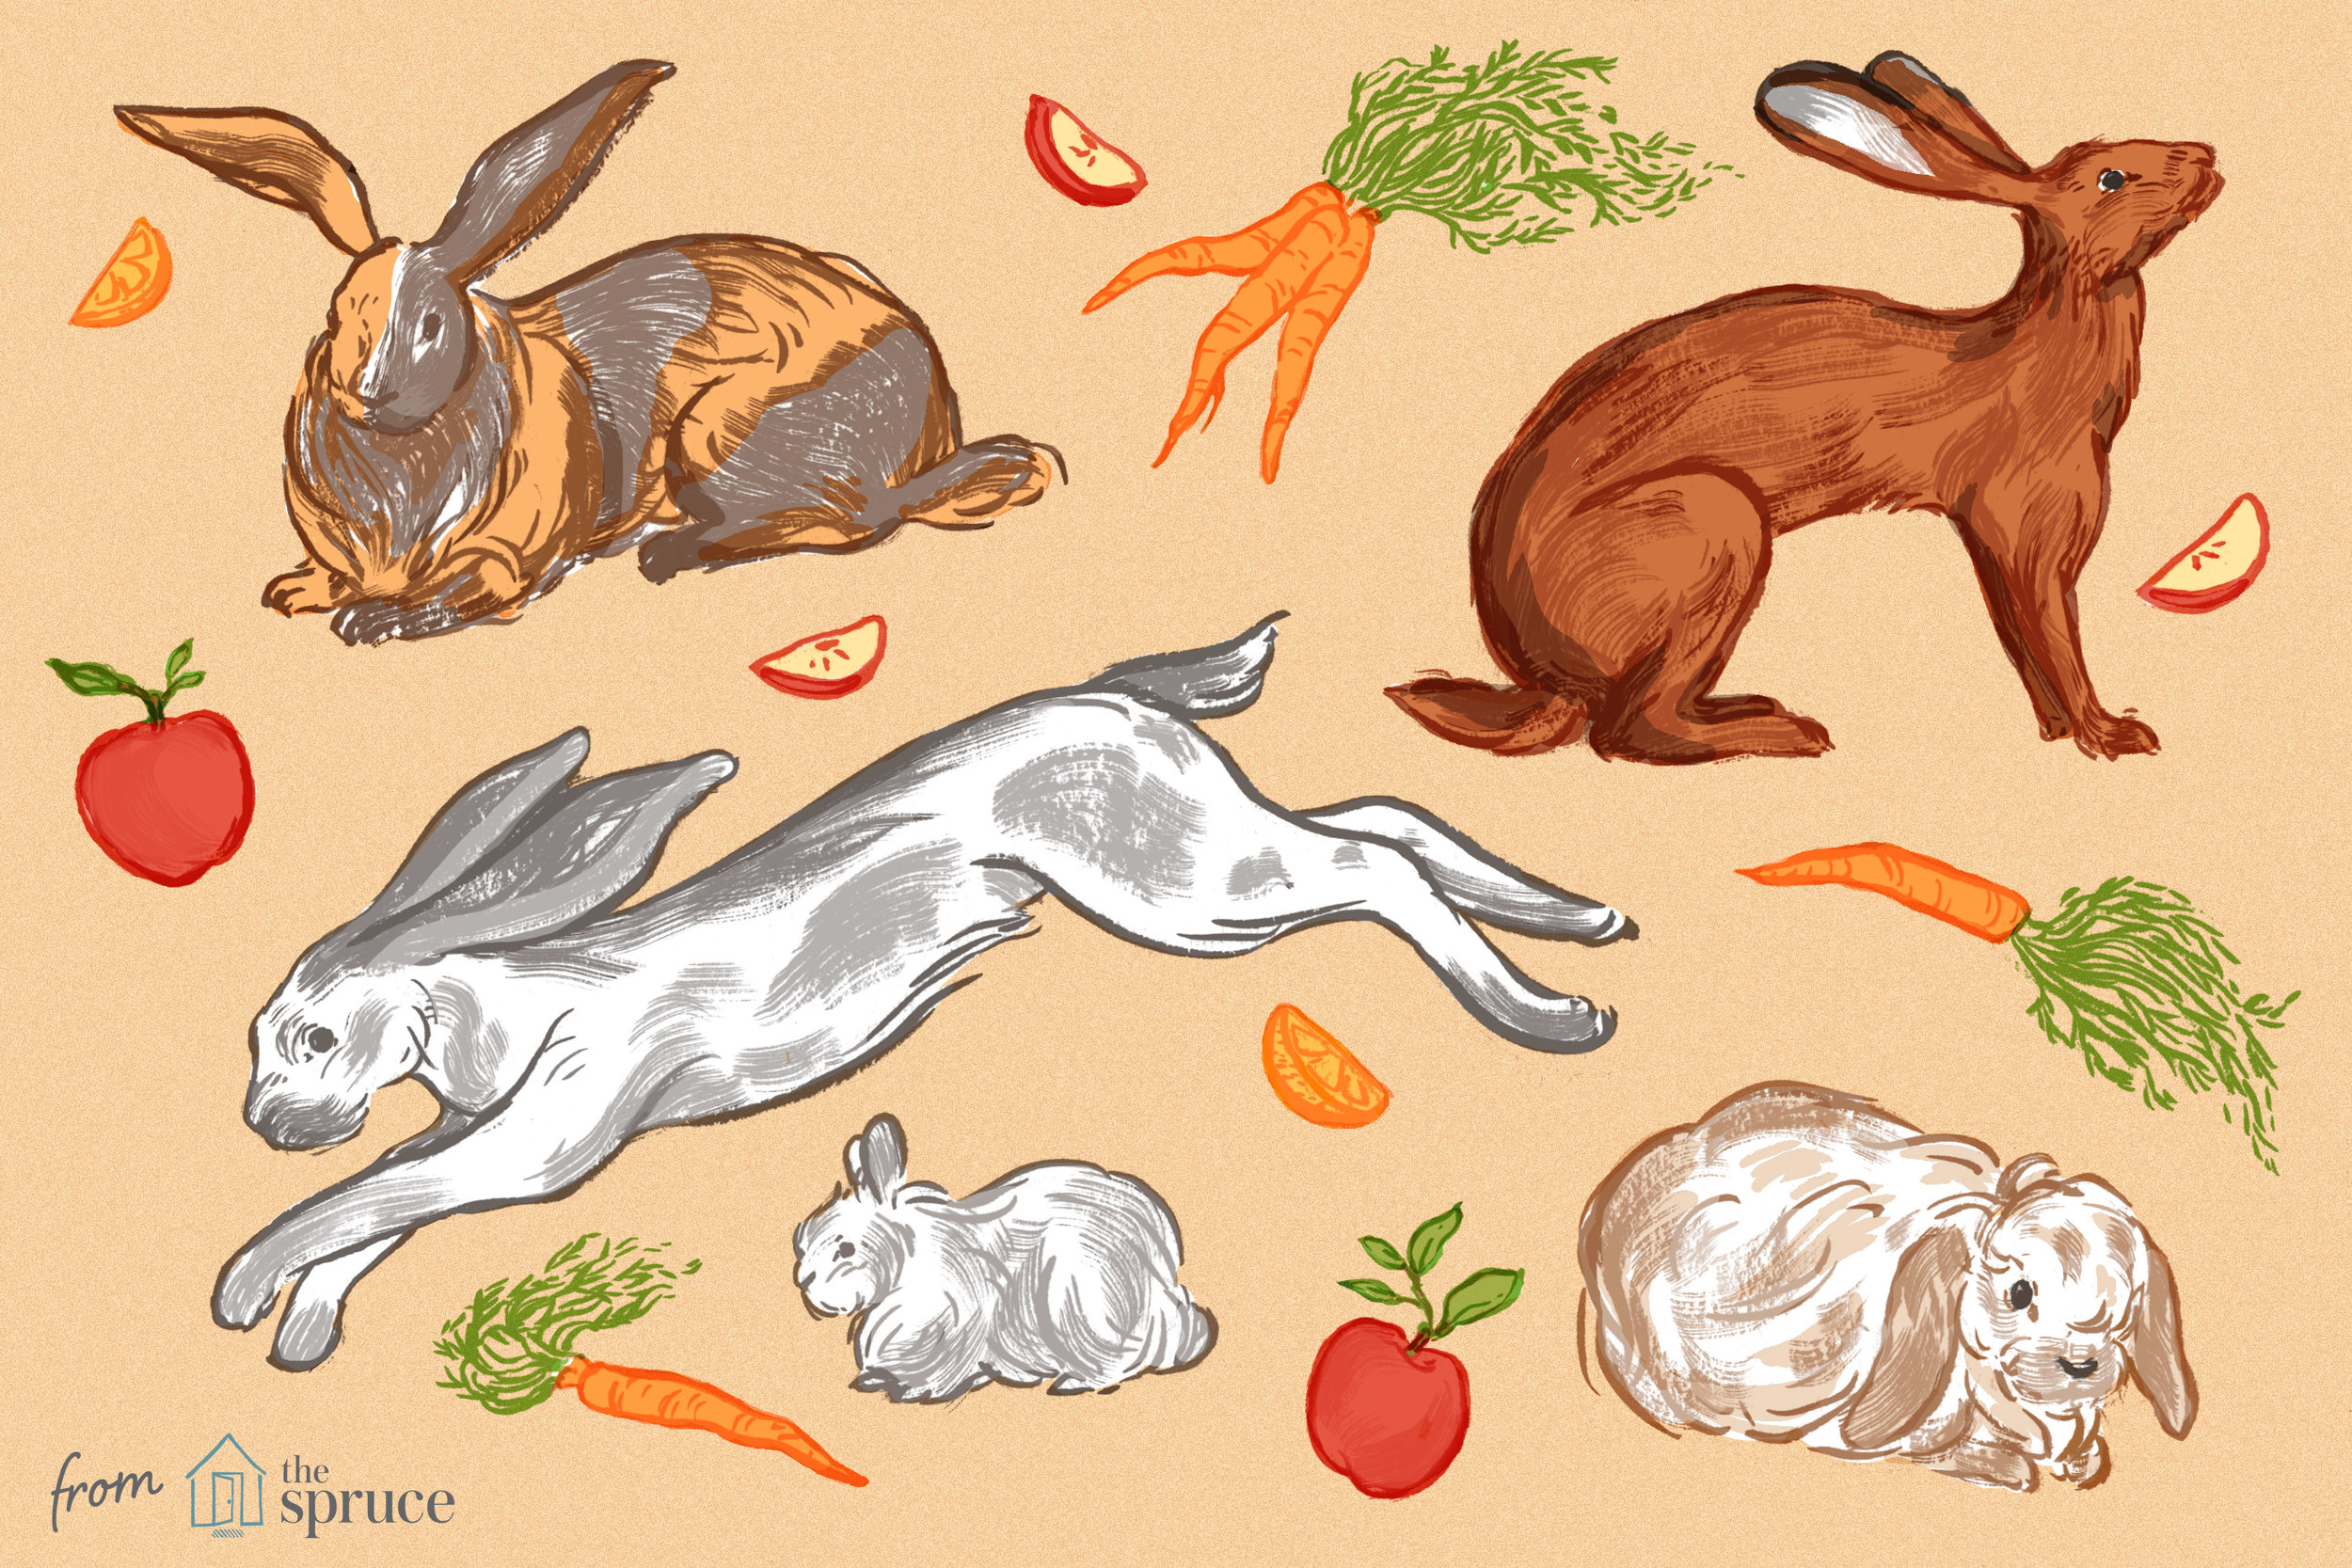 rabbit-breeds-1237186-final-v3.jpg